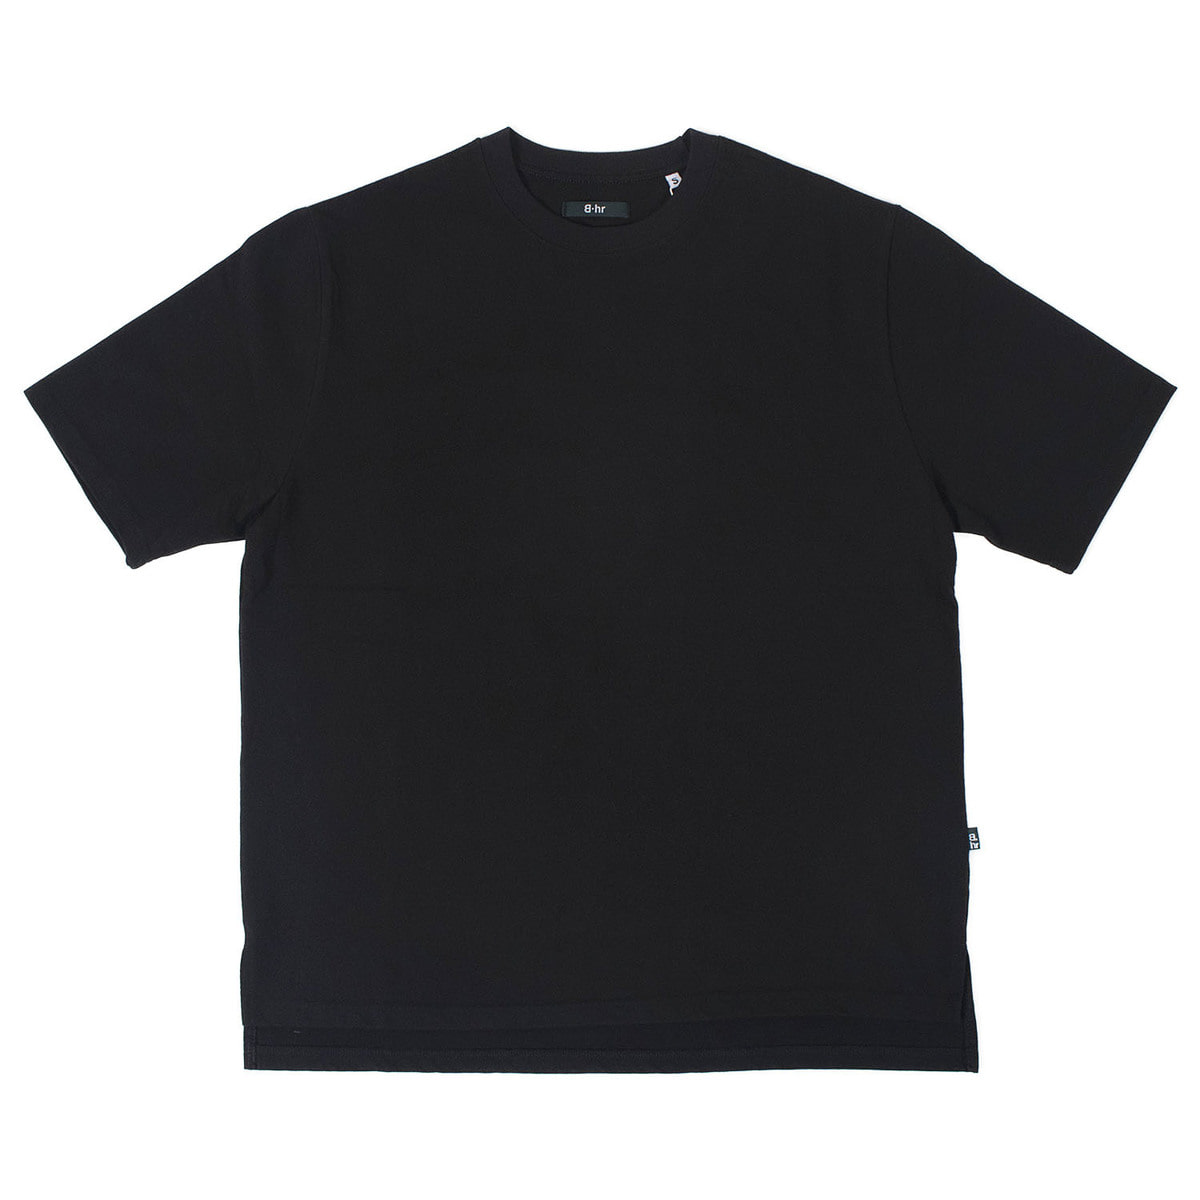 Half Big T-shirts (Black)